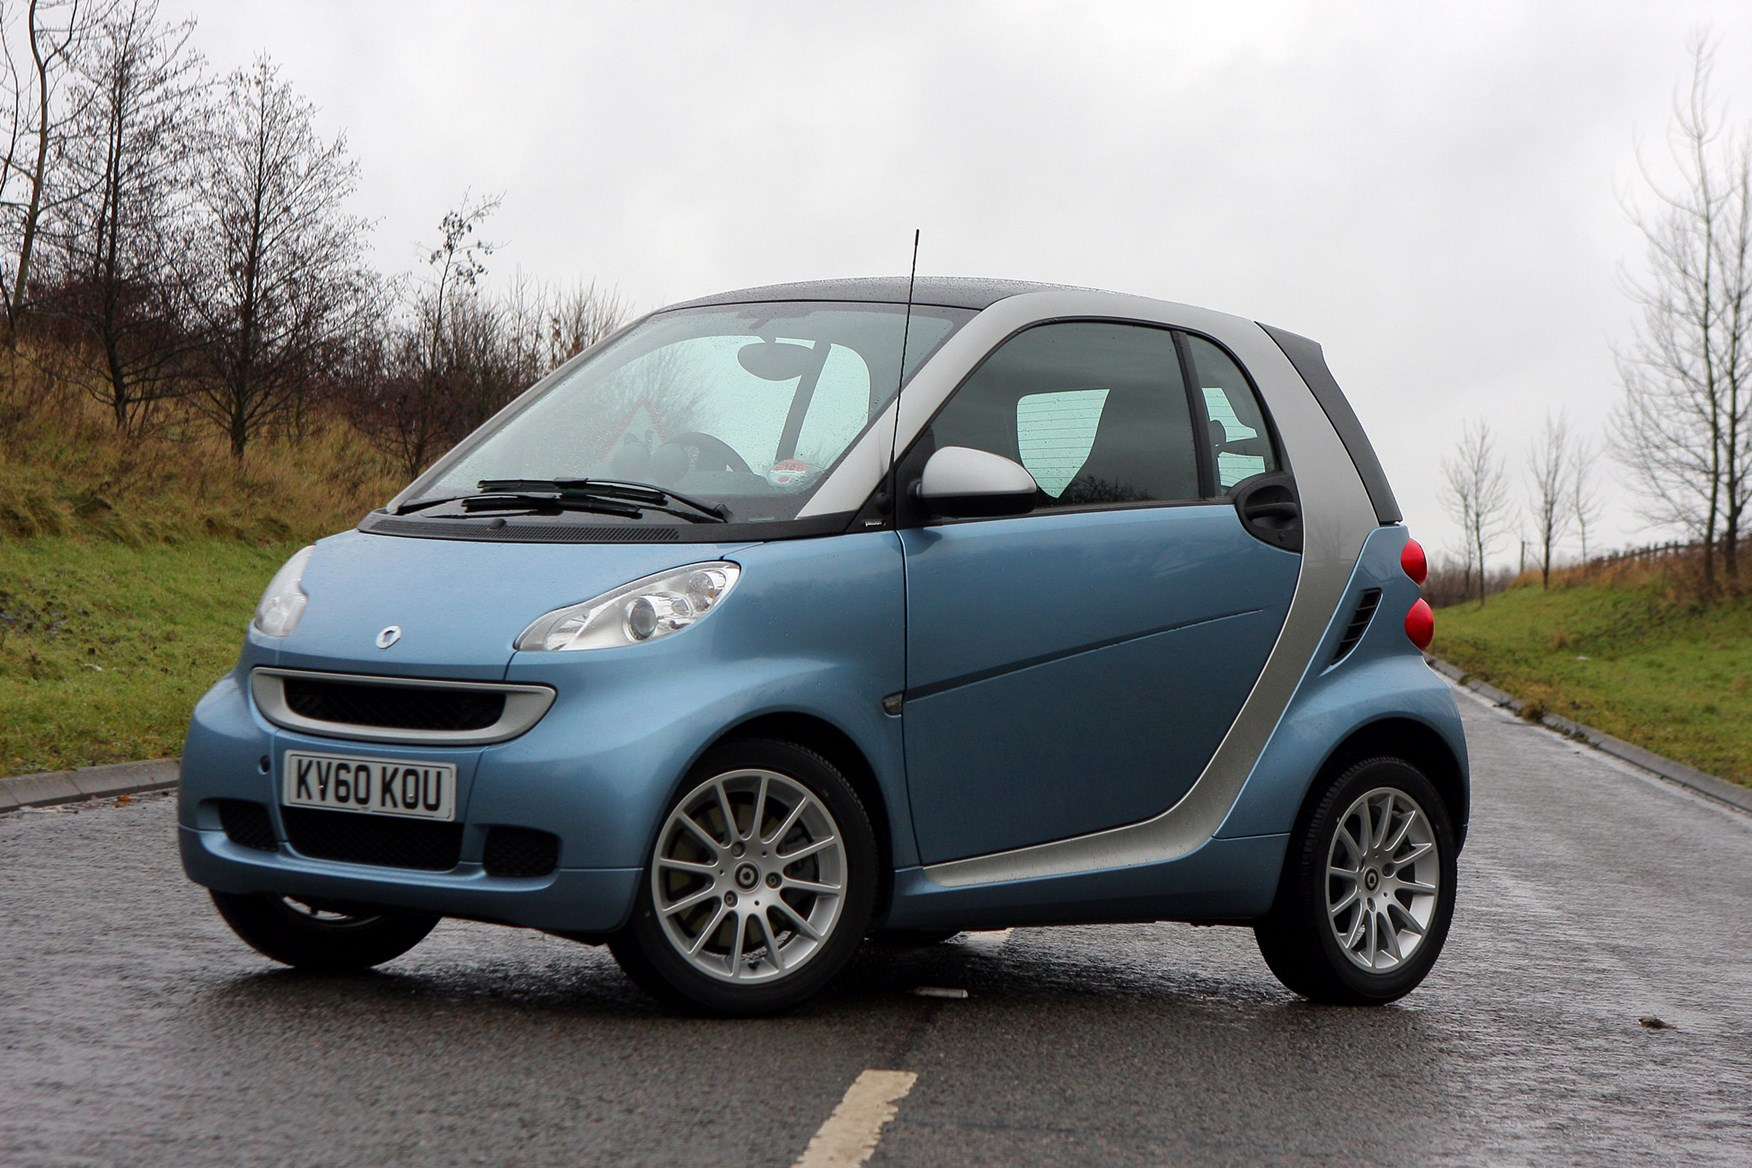 Smart Fortwo Coupe Review 2007 2014 Parkers 2008 Car Fuse Box How Much Is It To Insure